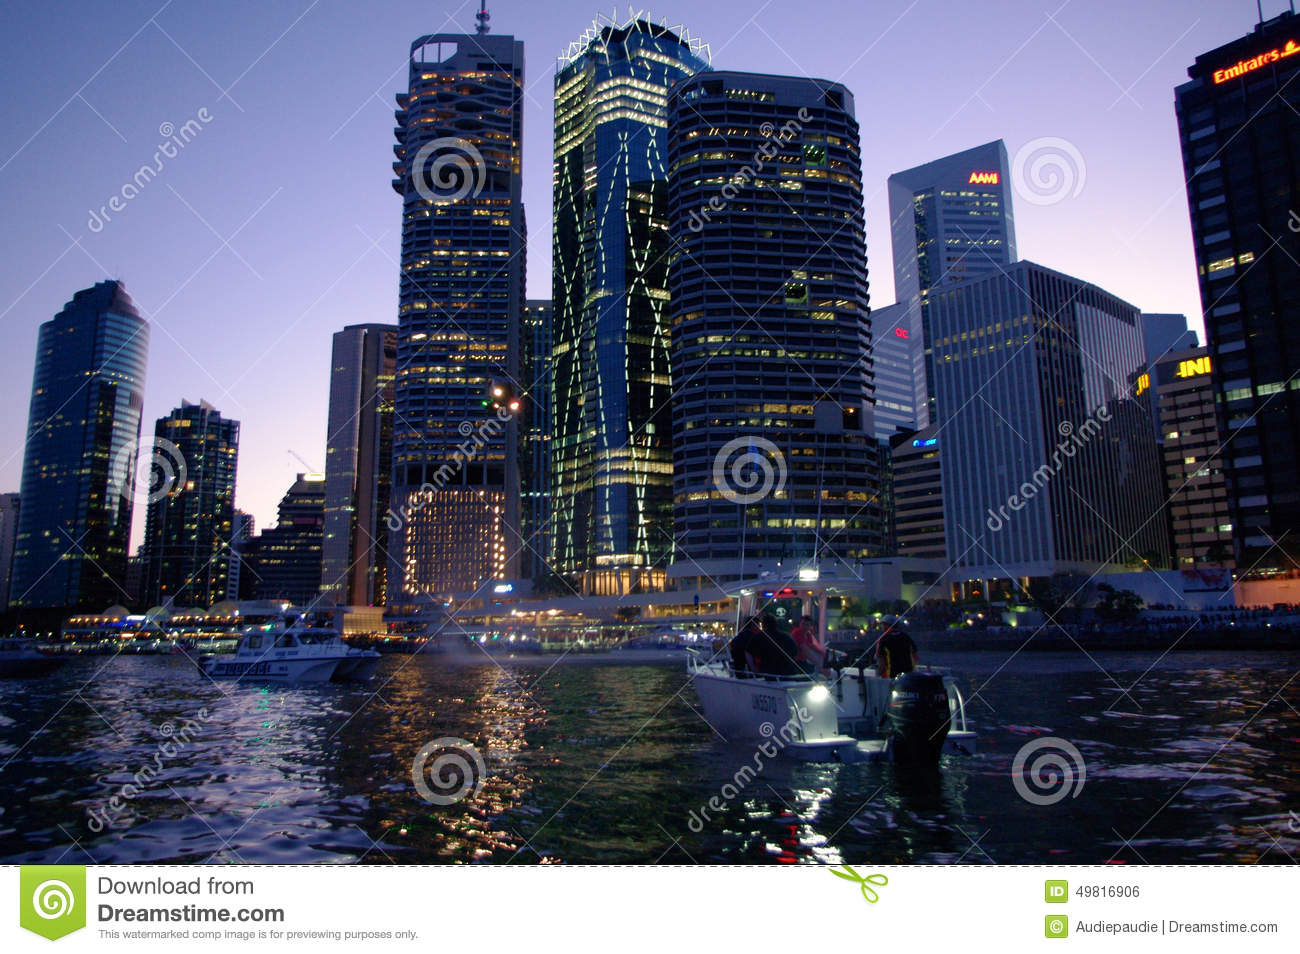 What is the date and time in Brisbane in Brisbane